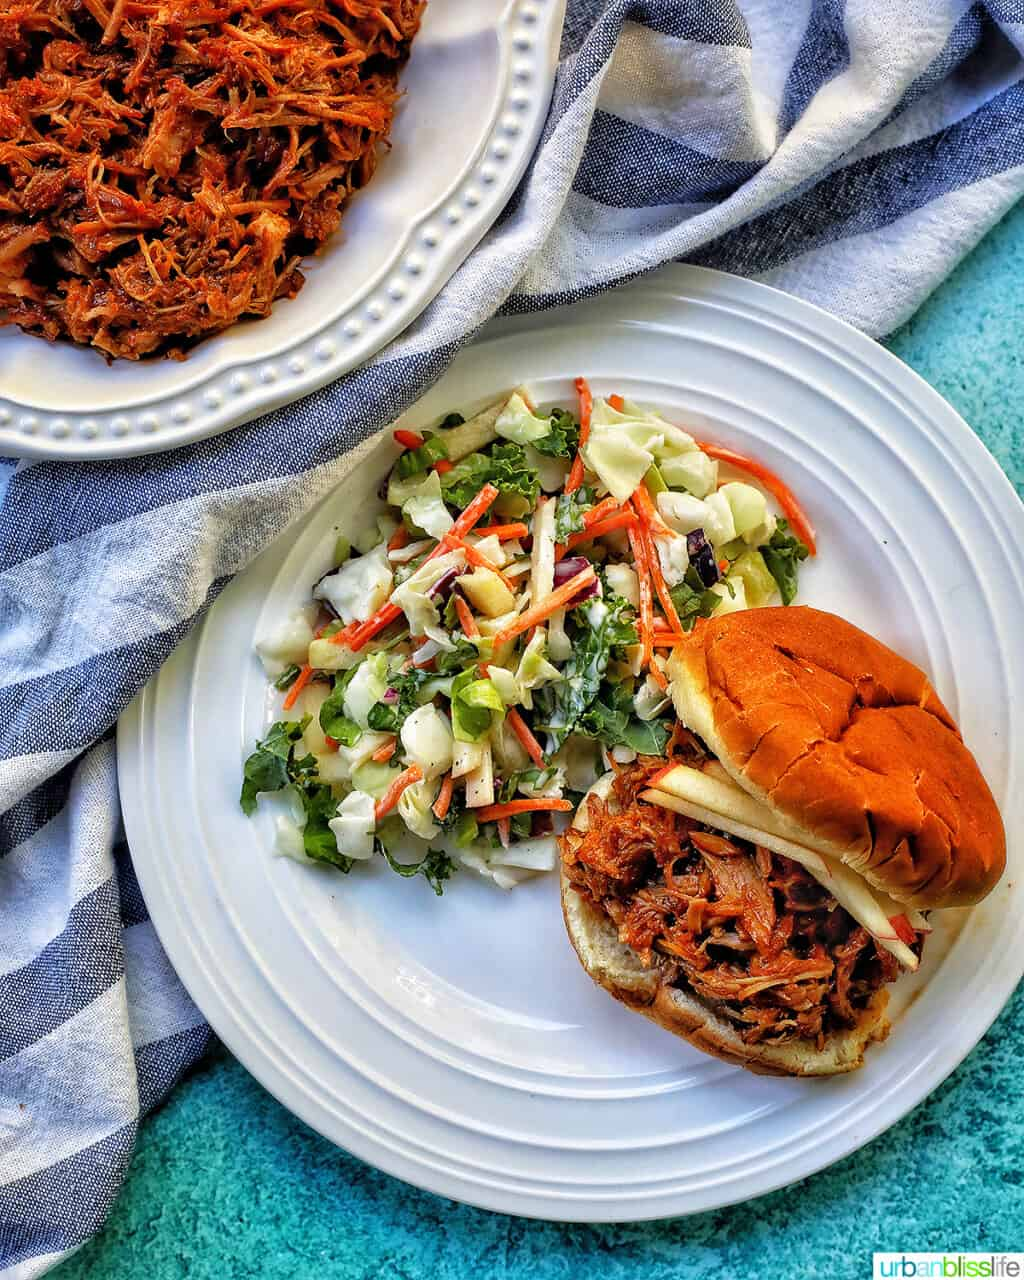 instant pot pulled pork sandwiches with slaw